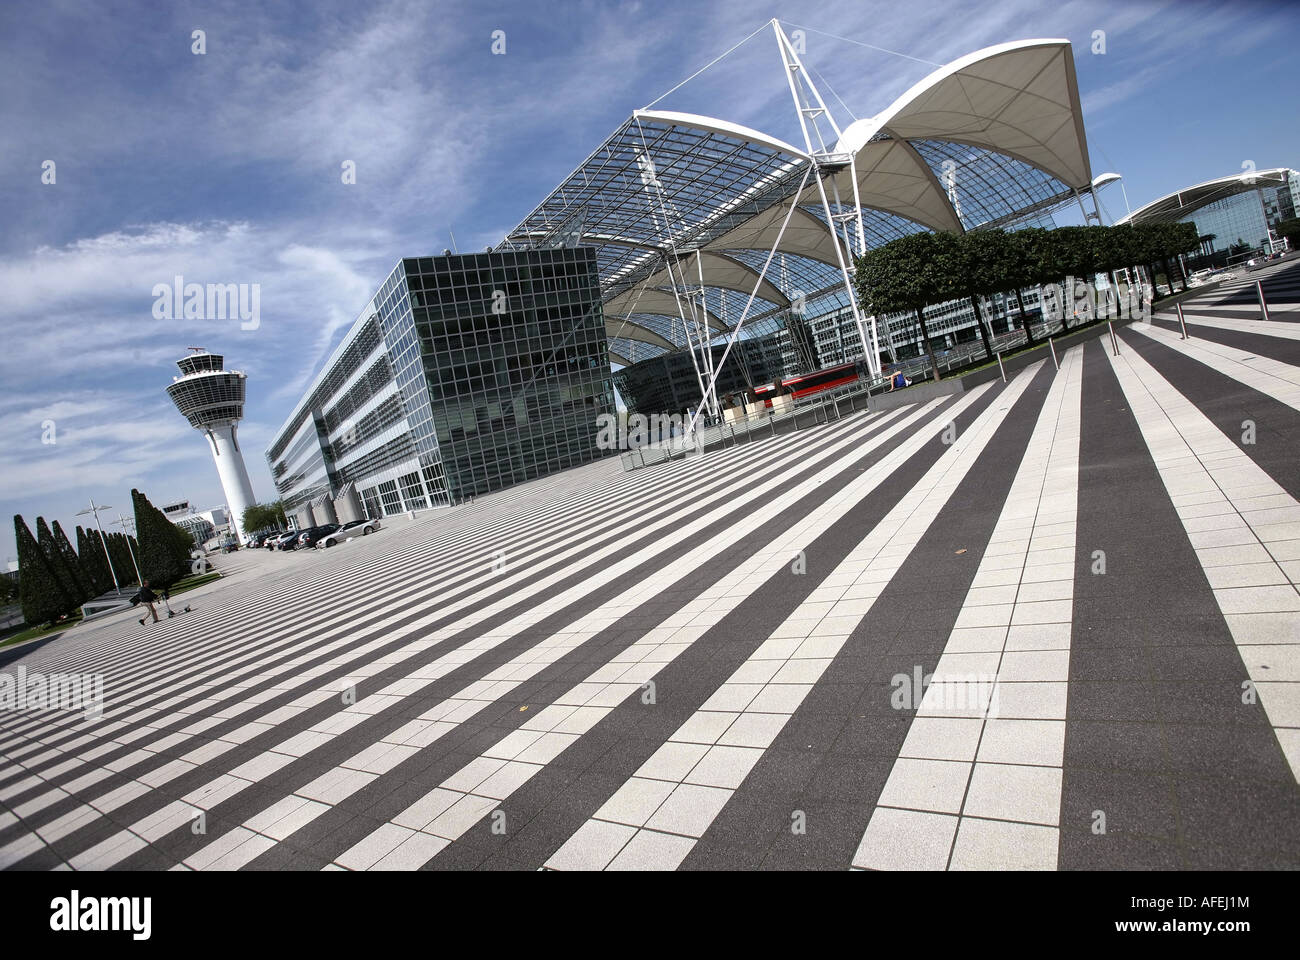 Illustration Airport:  Terminal 1 at Munich Airport - Stock Image